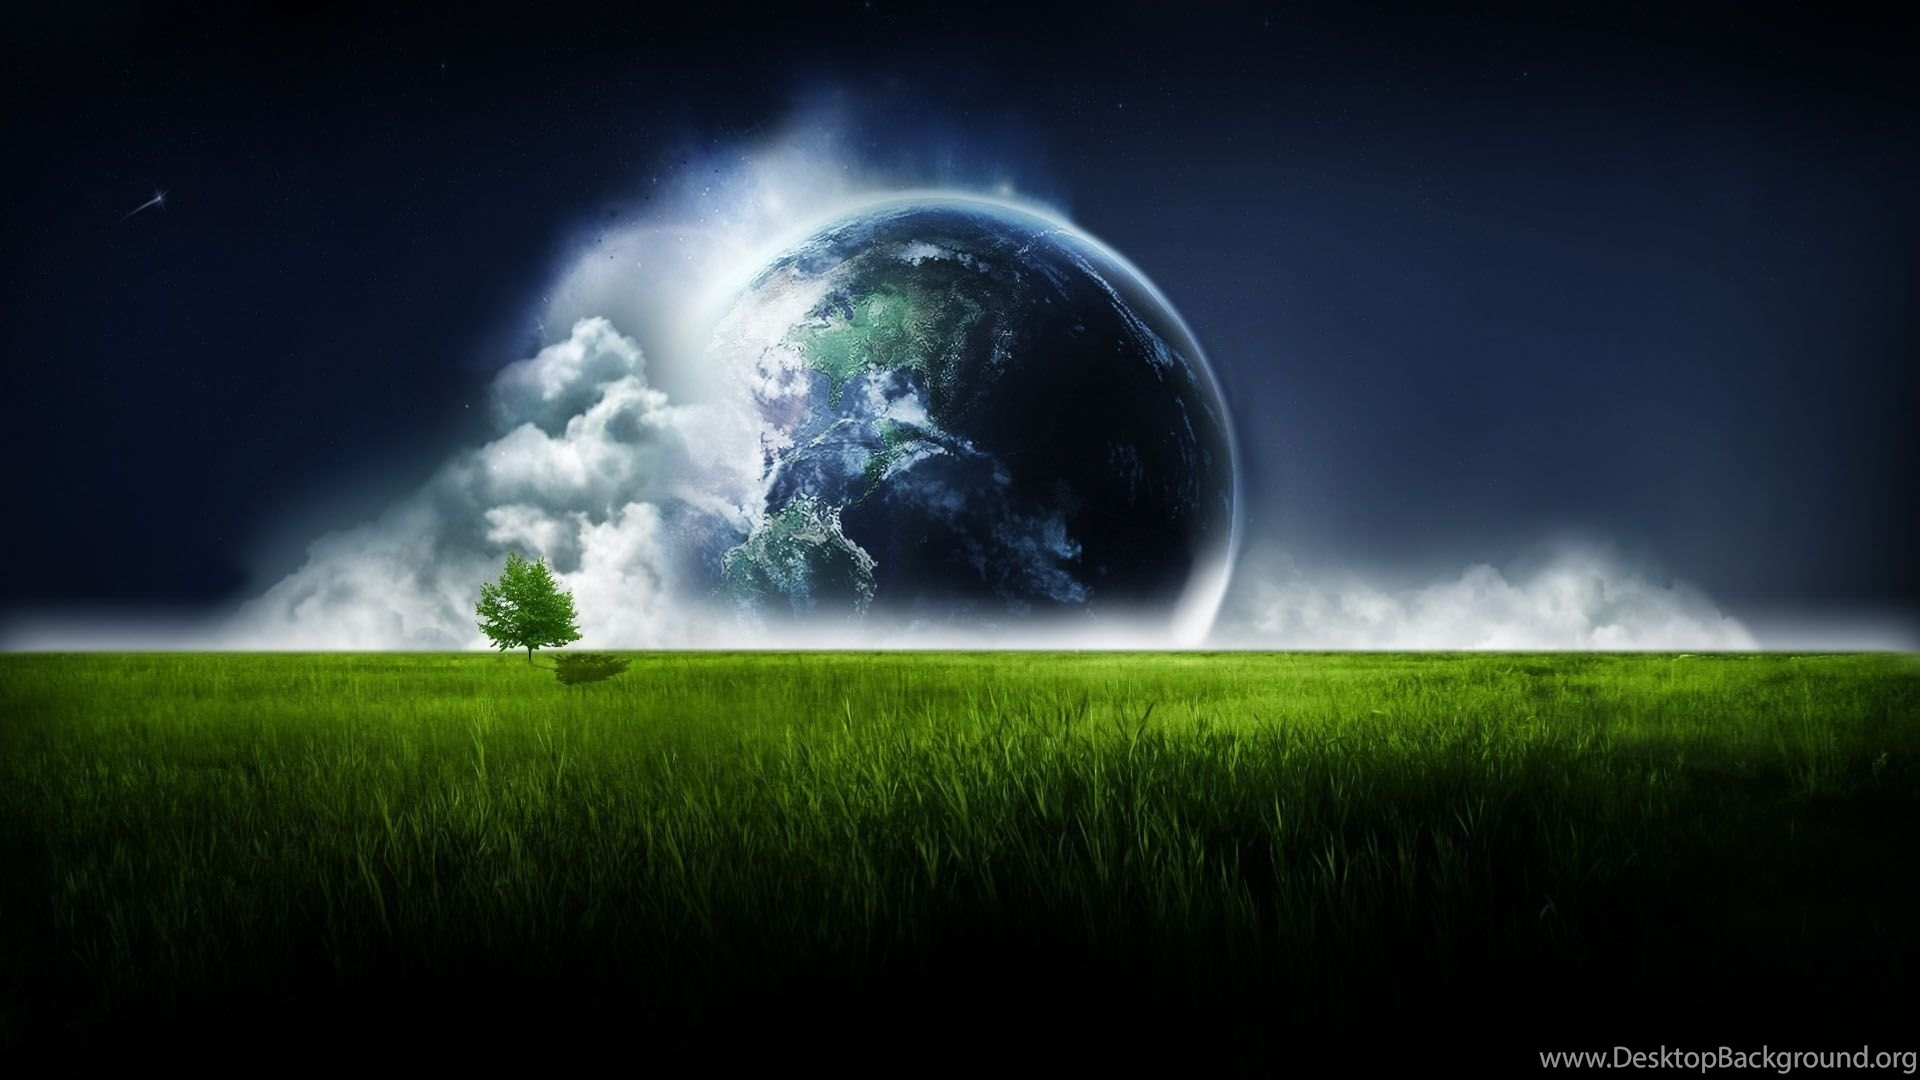 Amazing Wallpaper Space Wallpapers Nice Earth Android 2009067